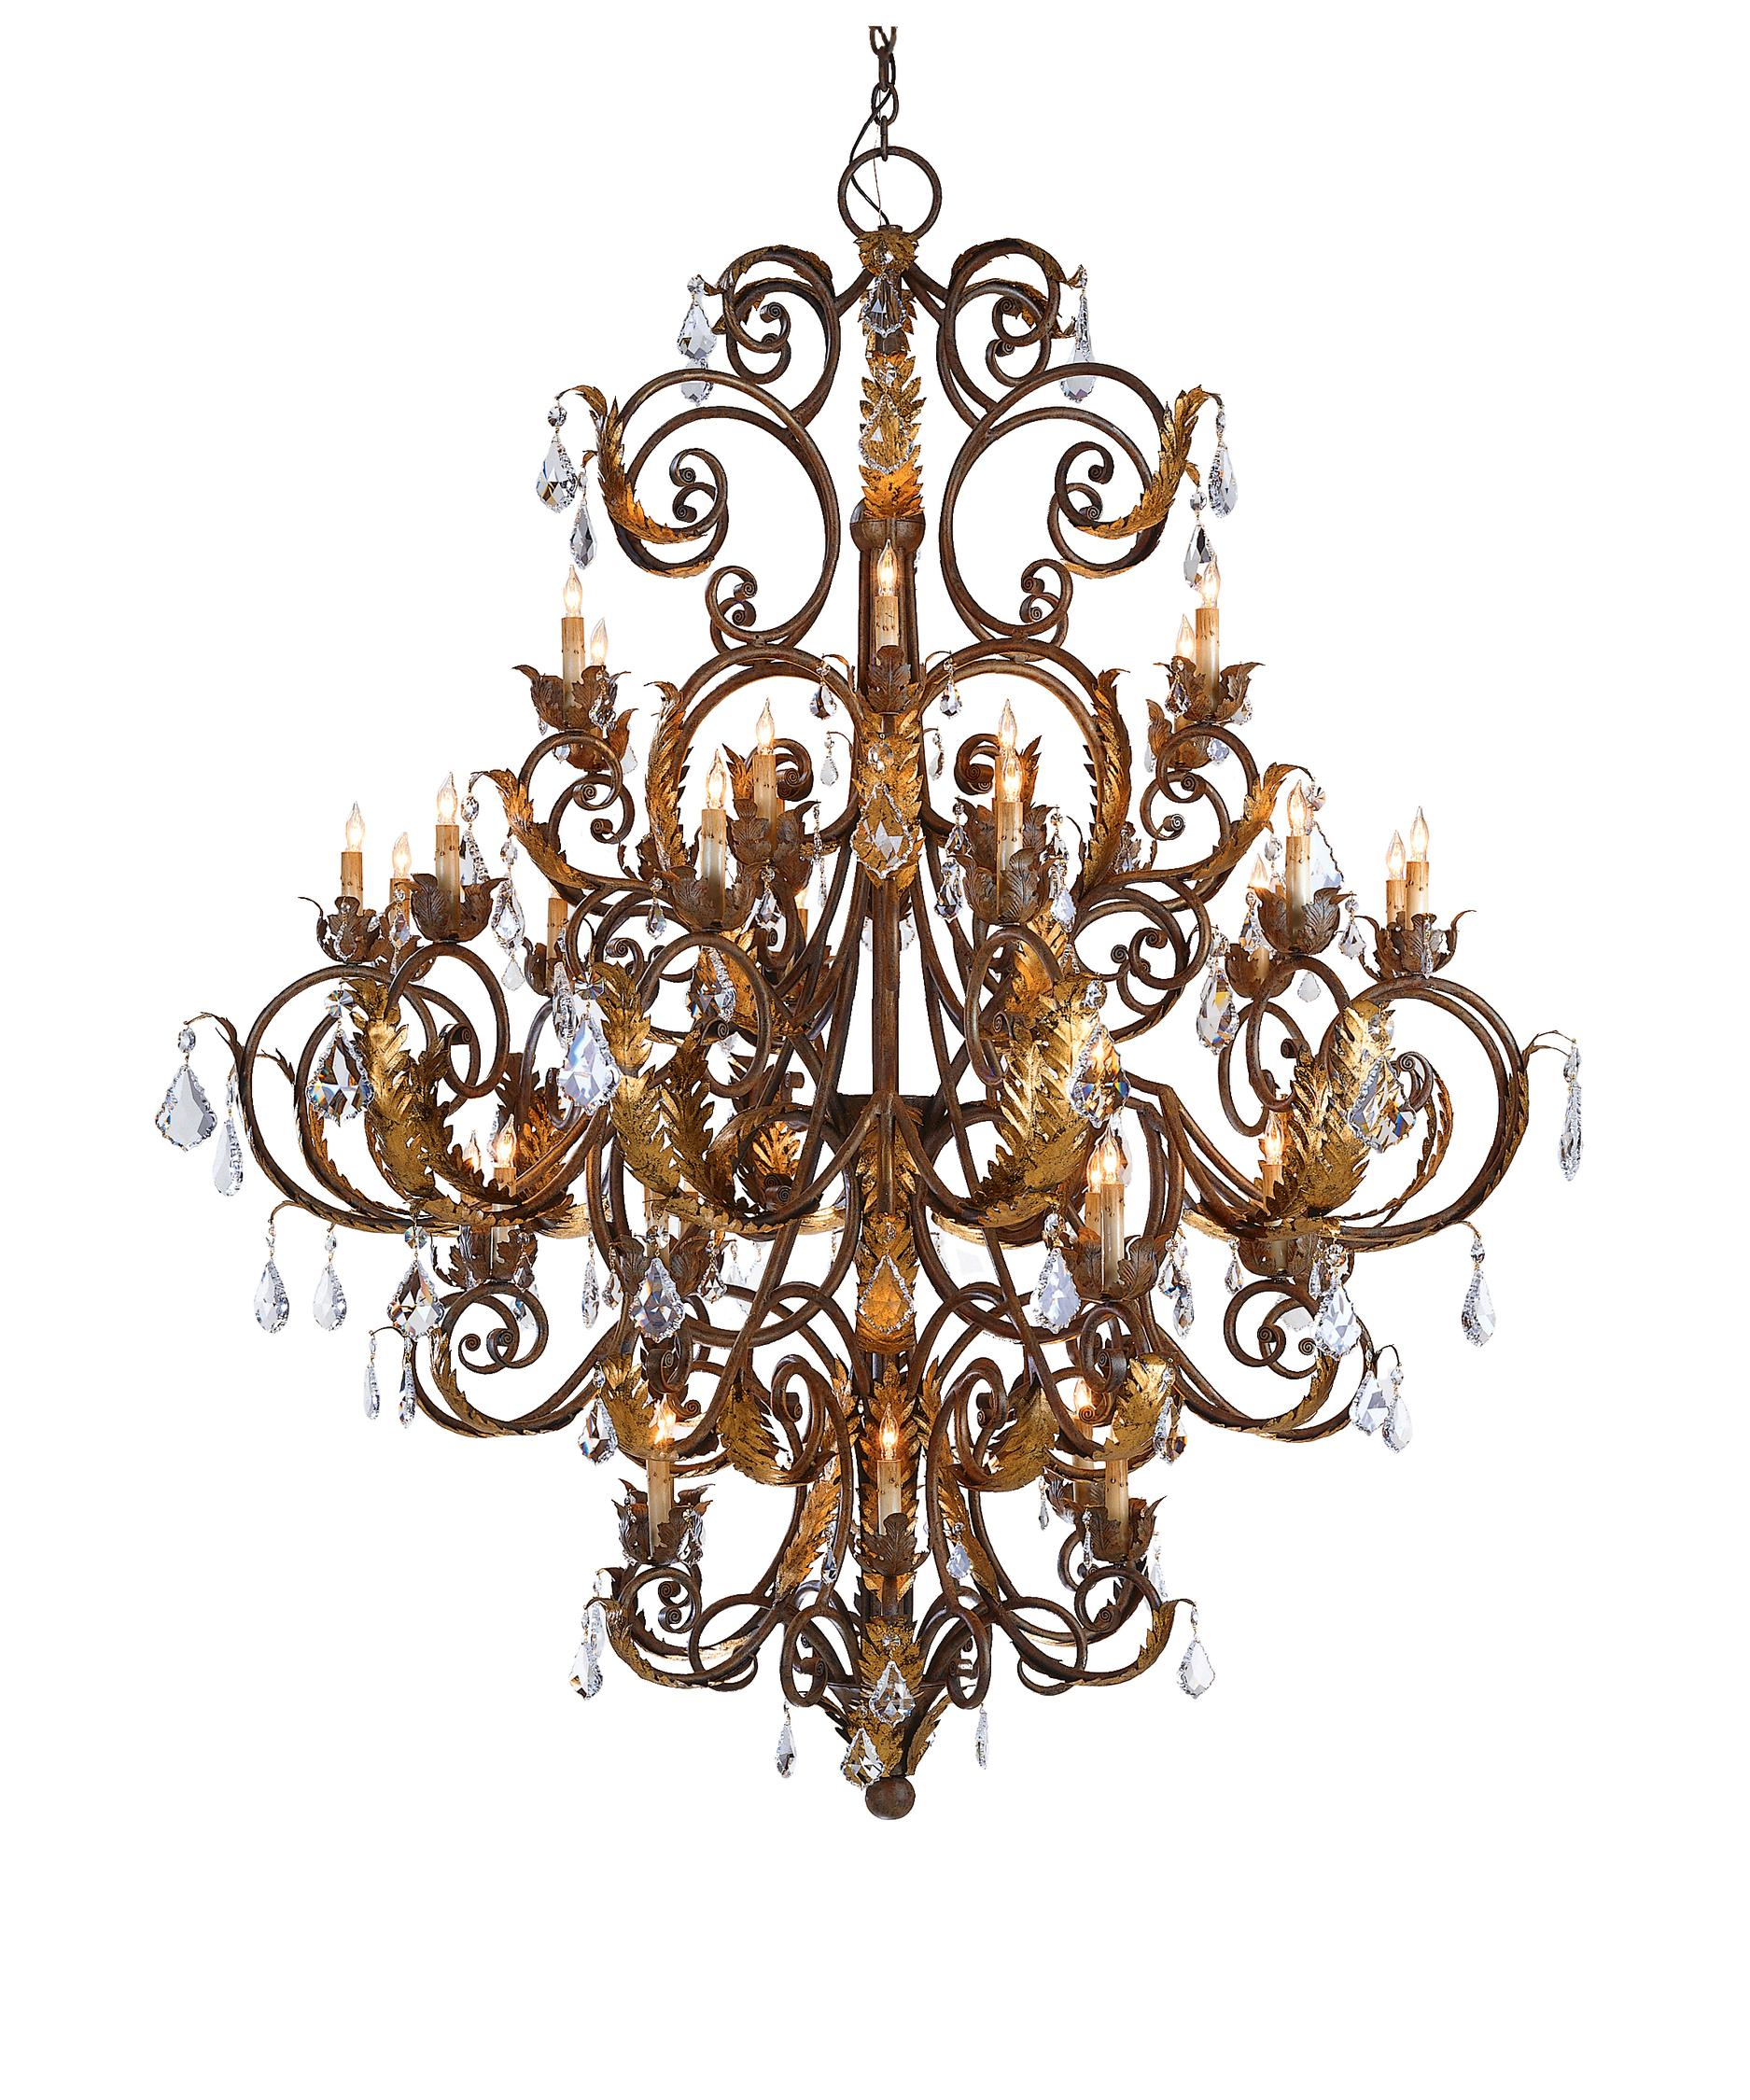 Currey and Company Innsbruck 55 Inch Wide 39 Light Chandelier – Currey and Company Lighting Chandeliers